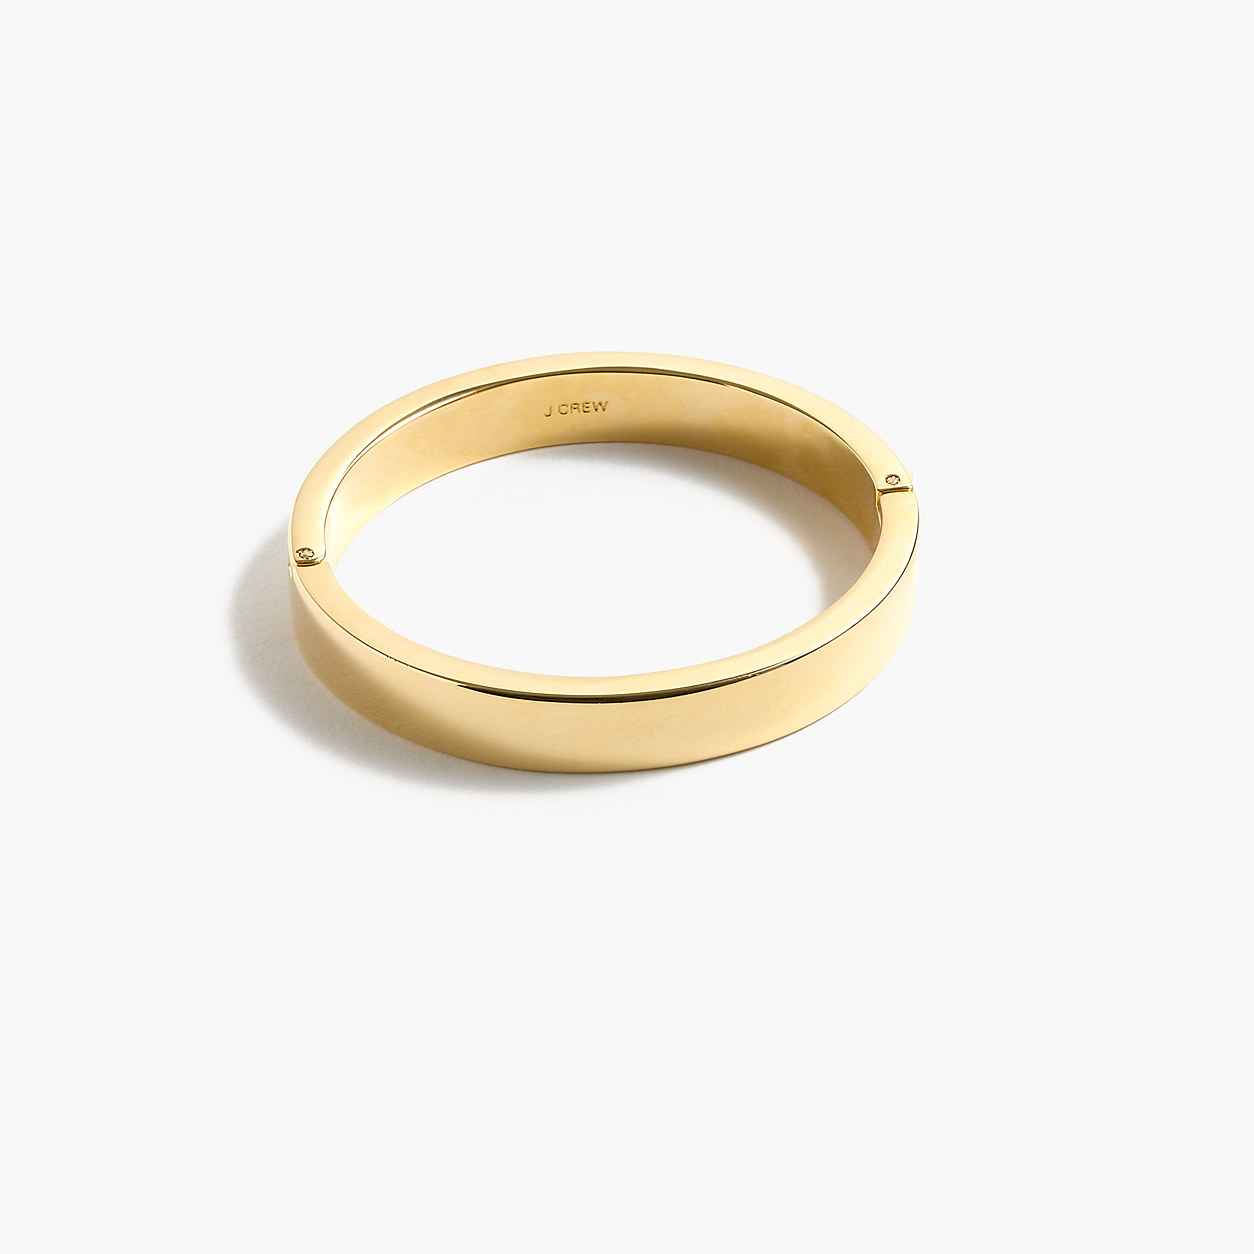 Gold-Plated-Hinge-Bracelet-cococozy-Cheap-to-Chic